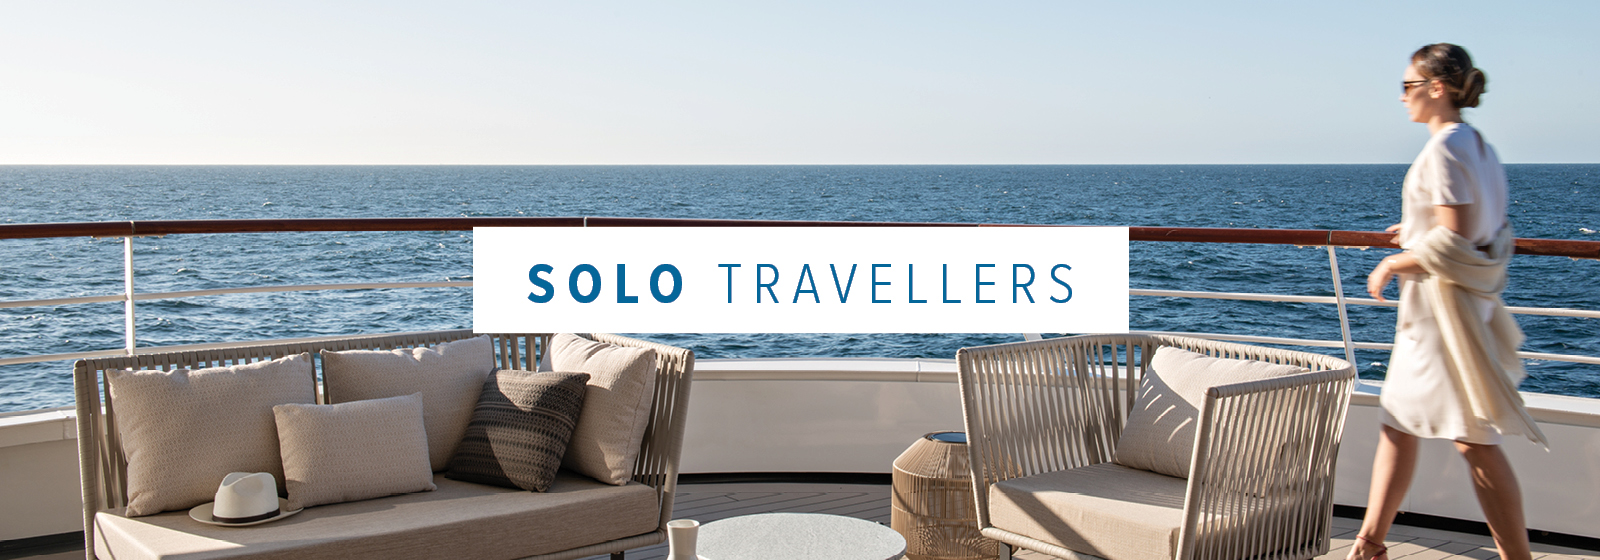 Solo Travellers